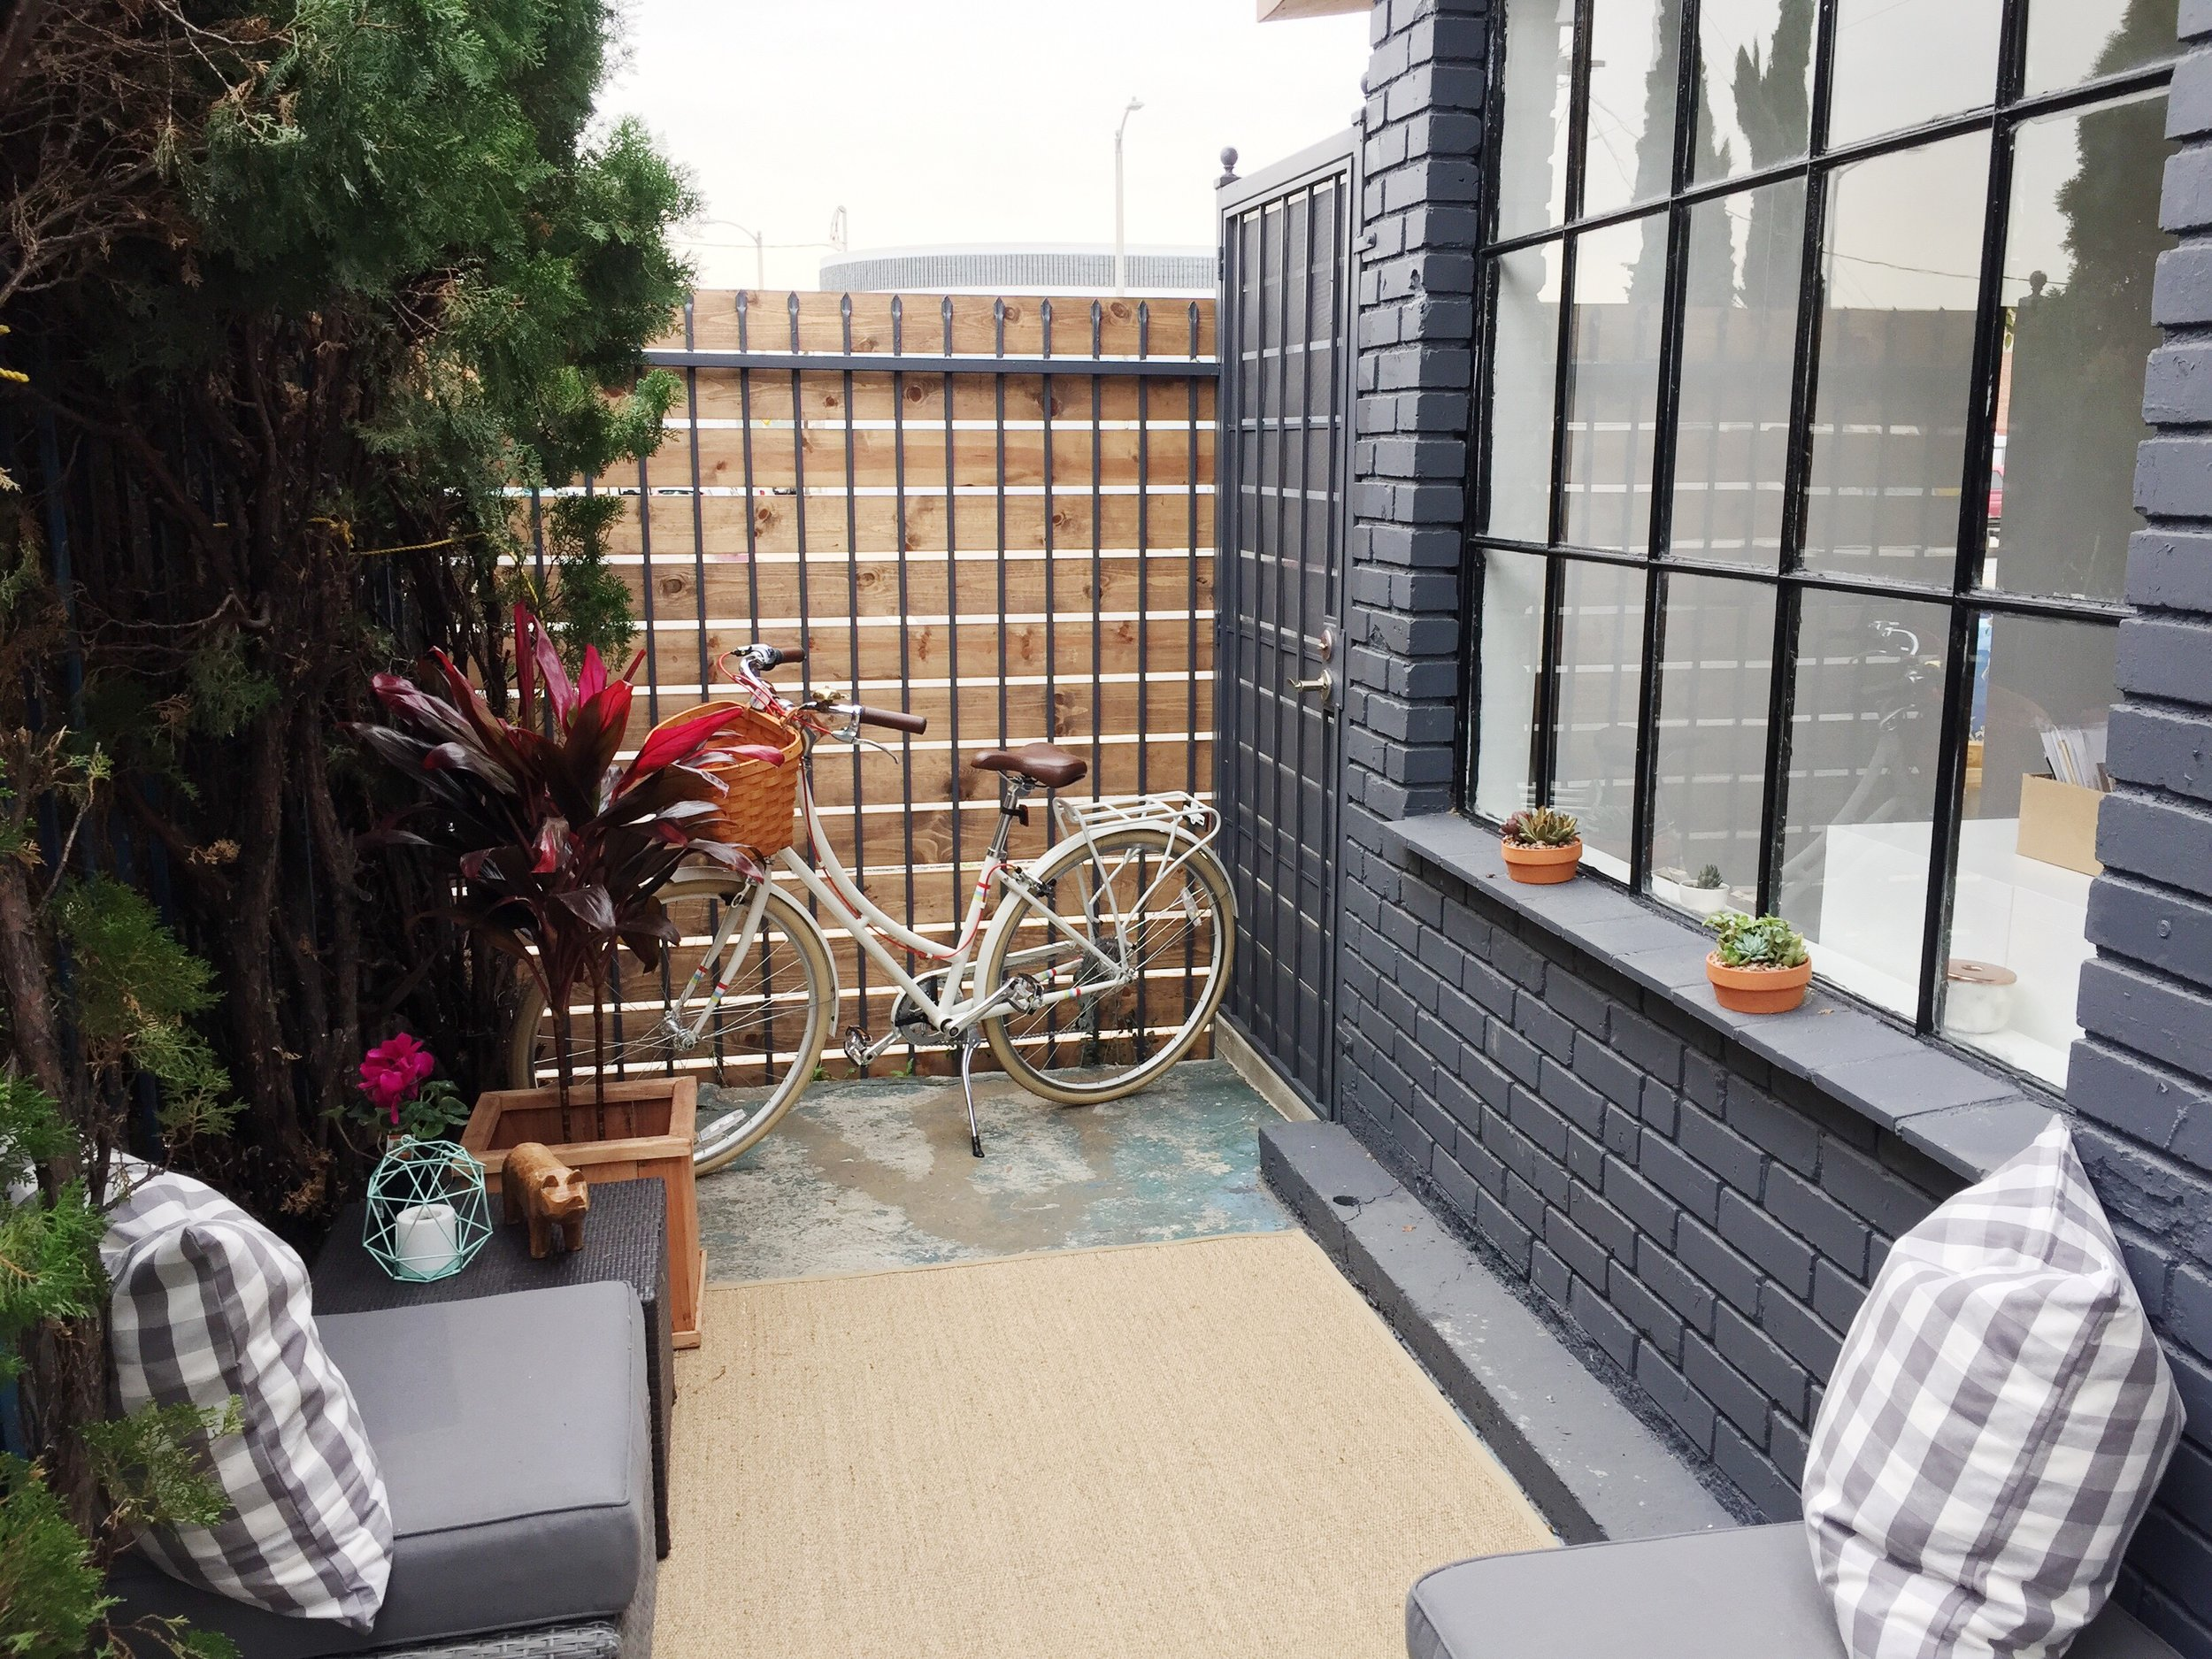 Private Patio to relax, entertain, work or meet with clients.